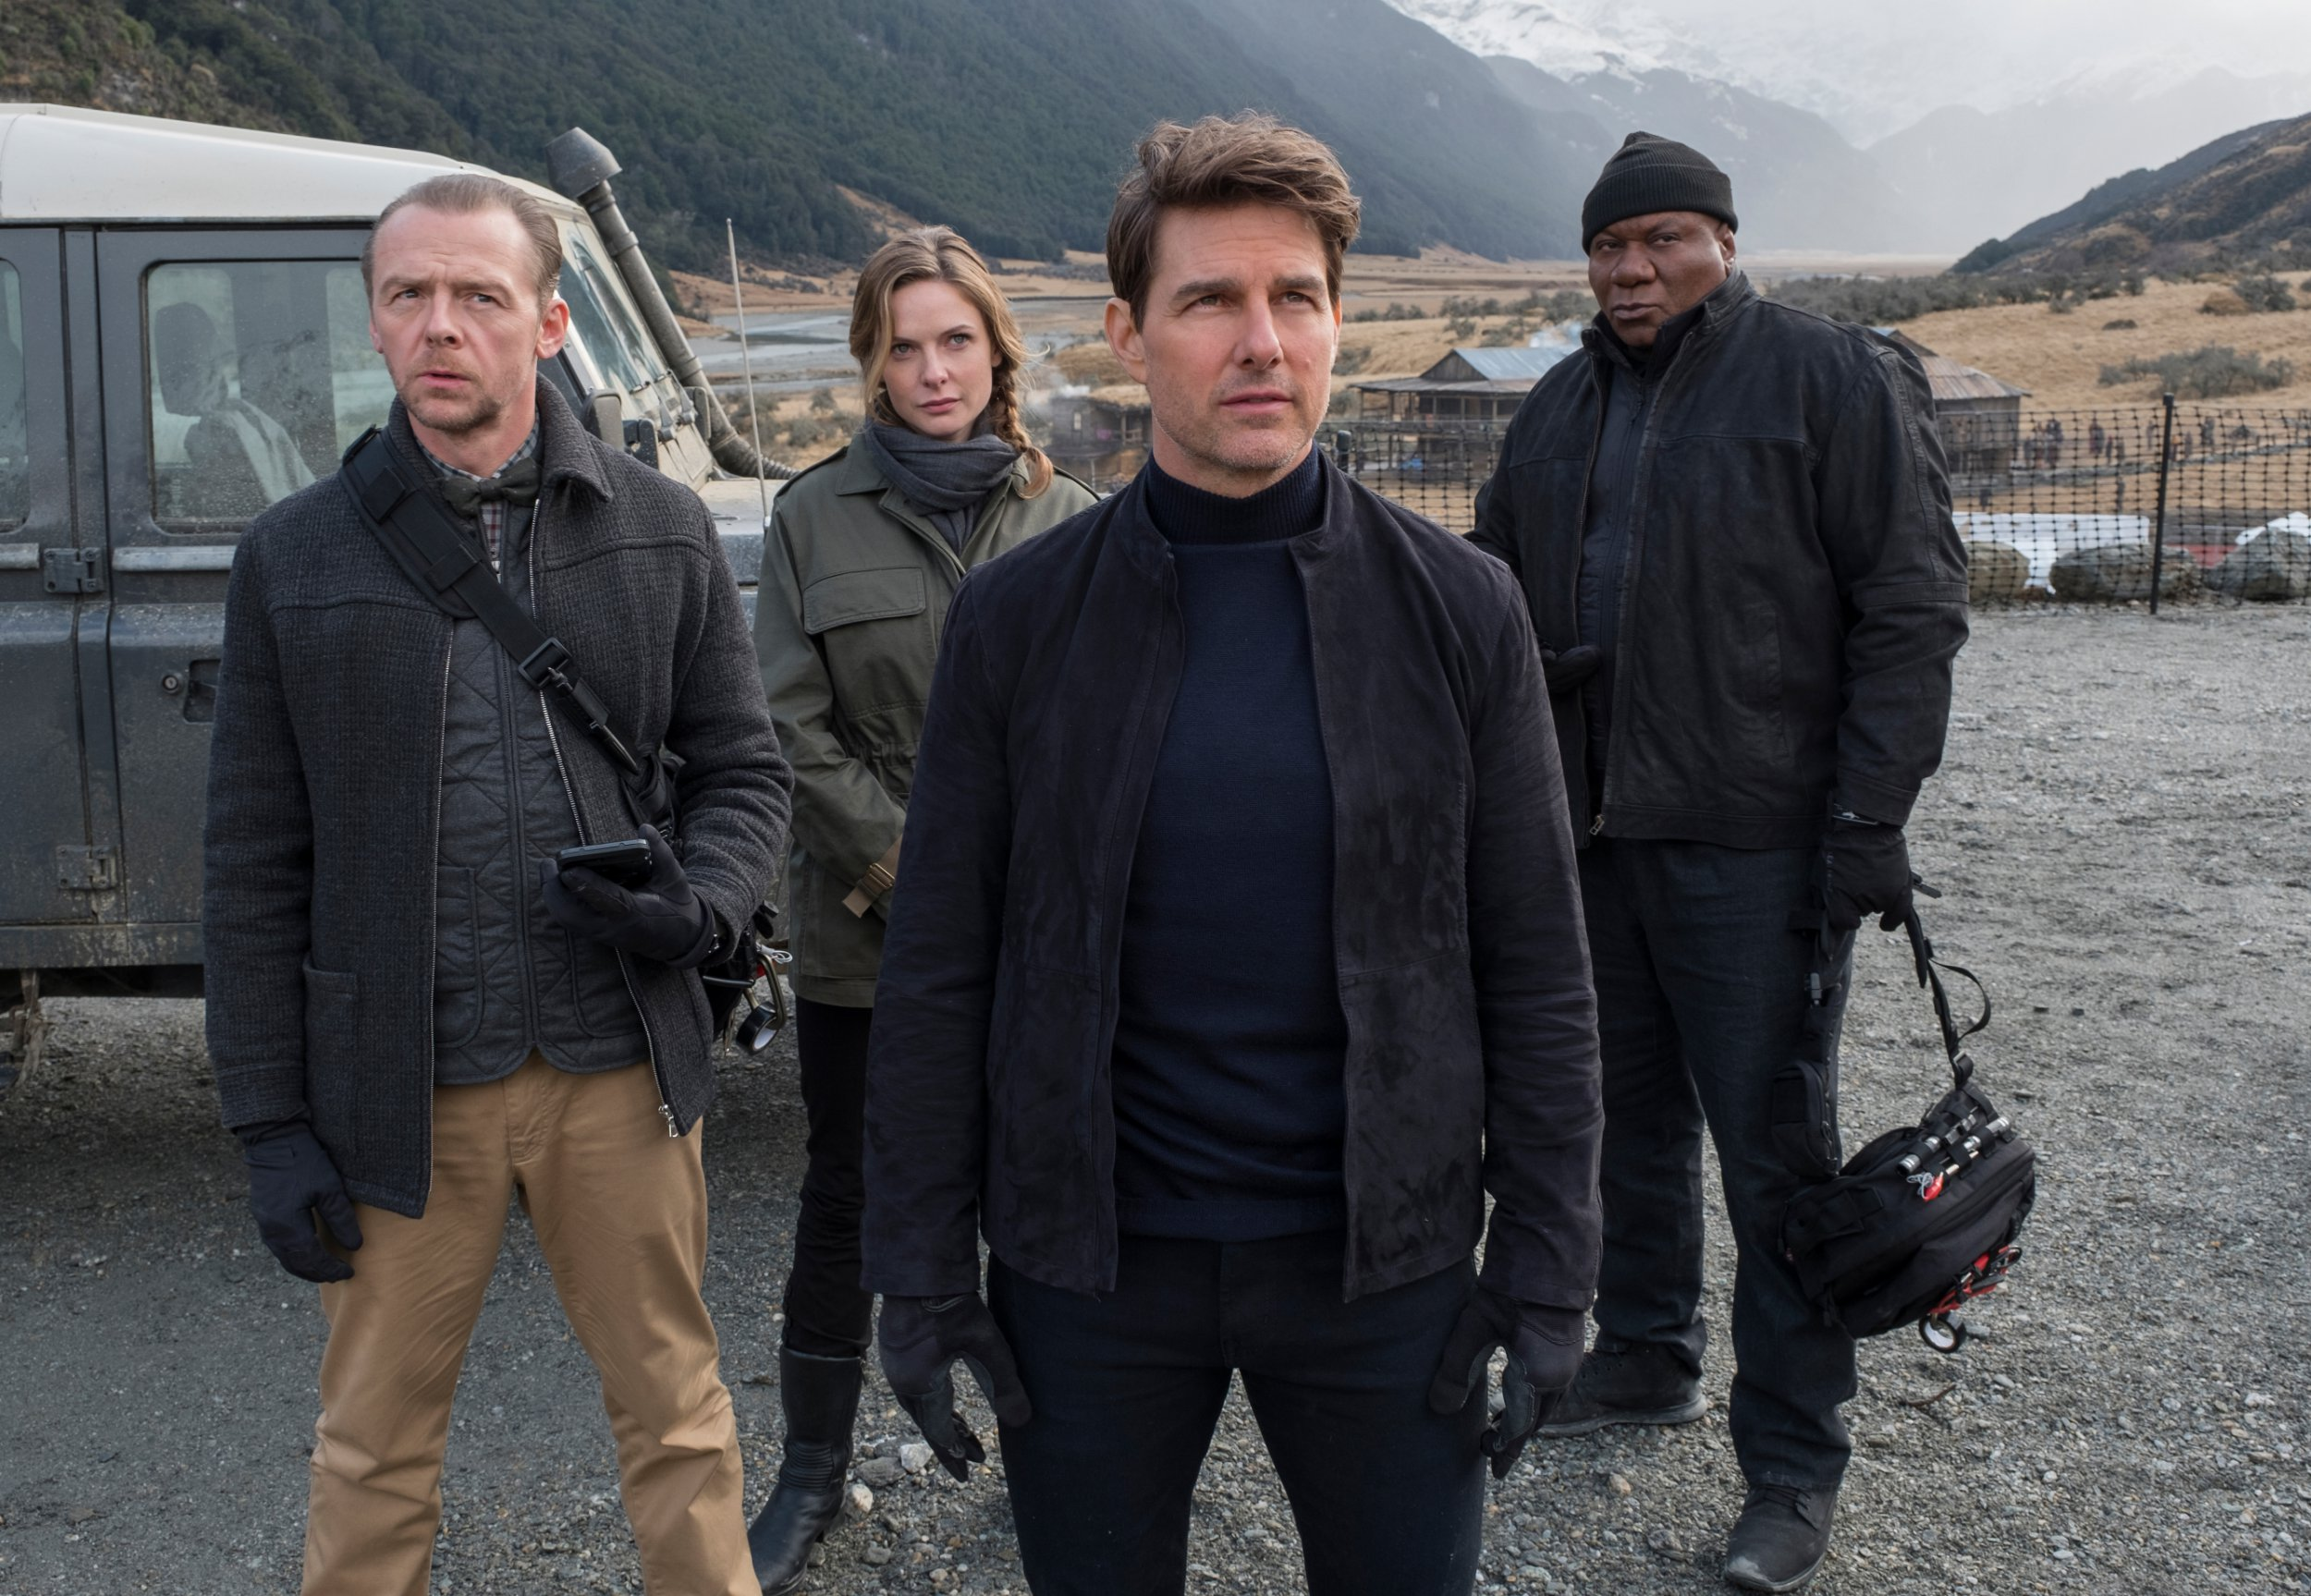 Tom Cruise is 'gonna be in orbit' as Mission Impossible director teases space plot